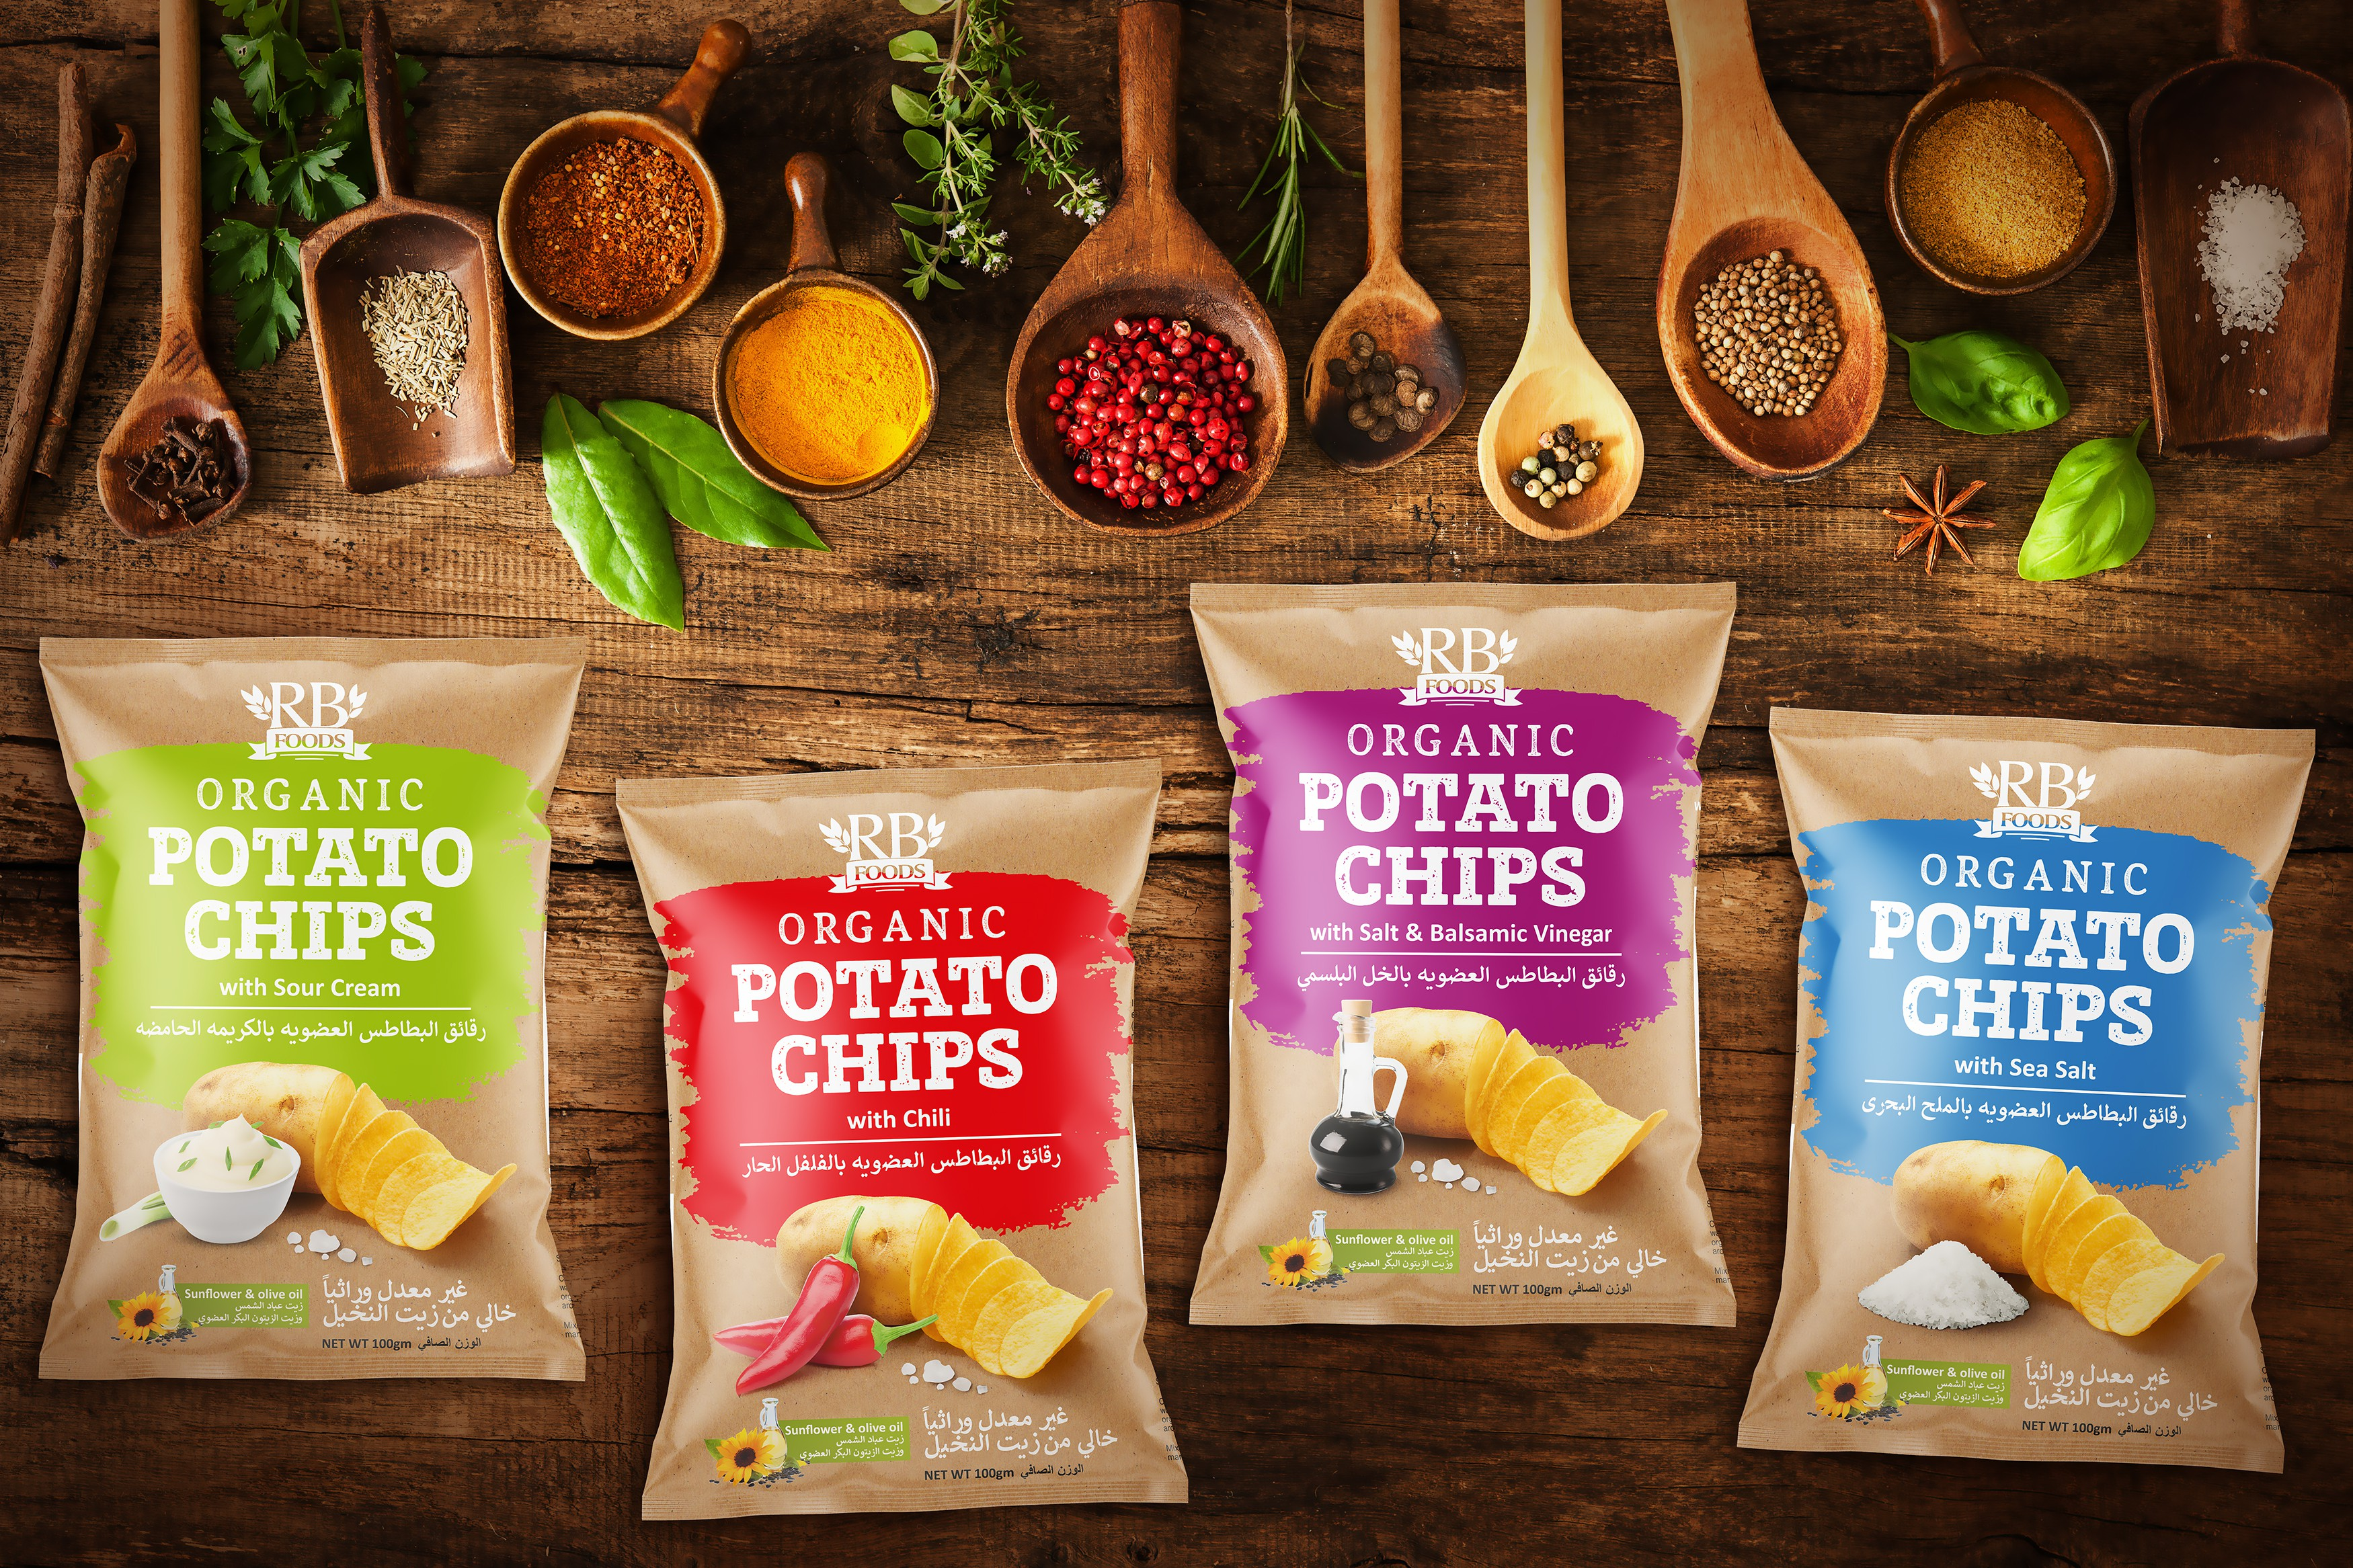 Sea Salt and chili potato chips snack packaging!